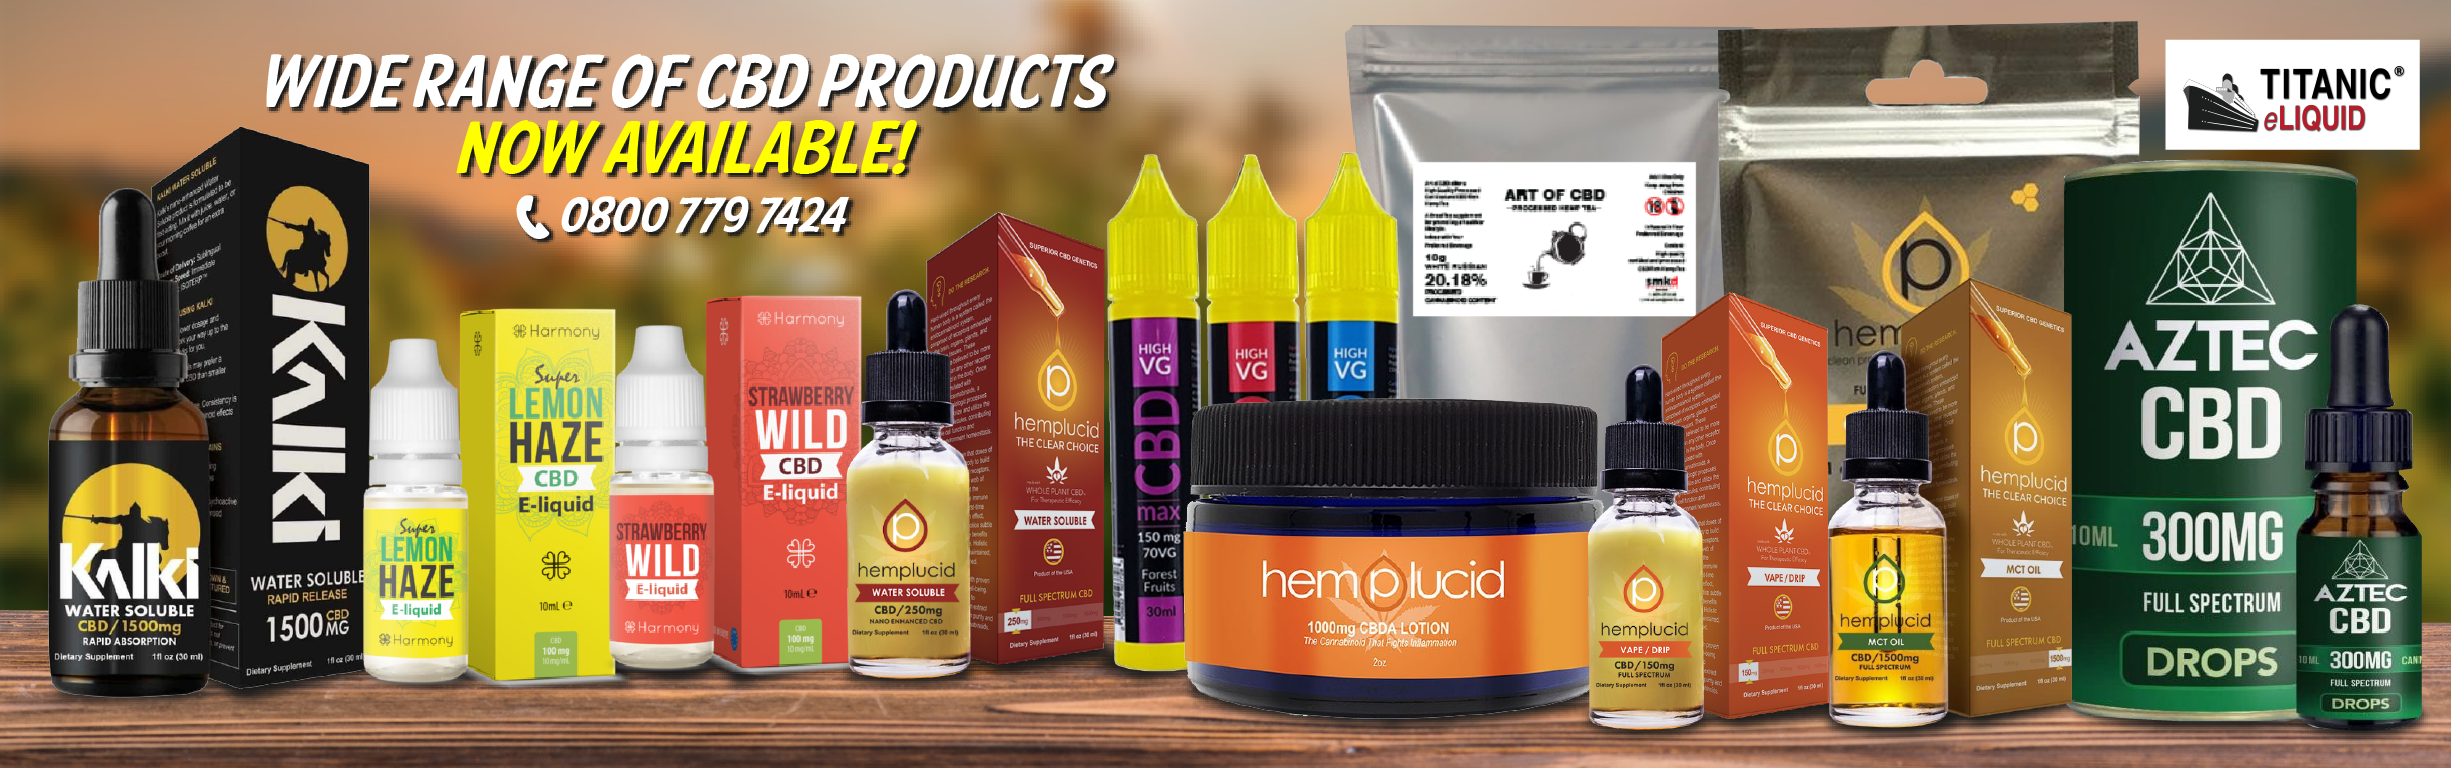 New Wide Range of CBD Products!